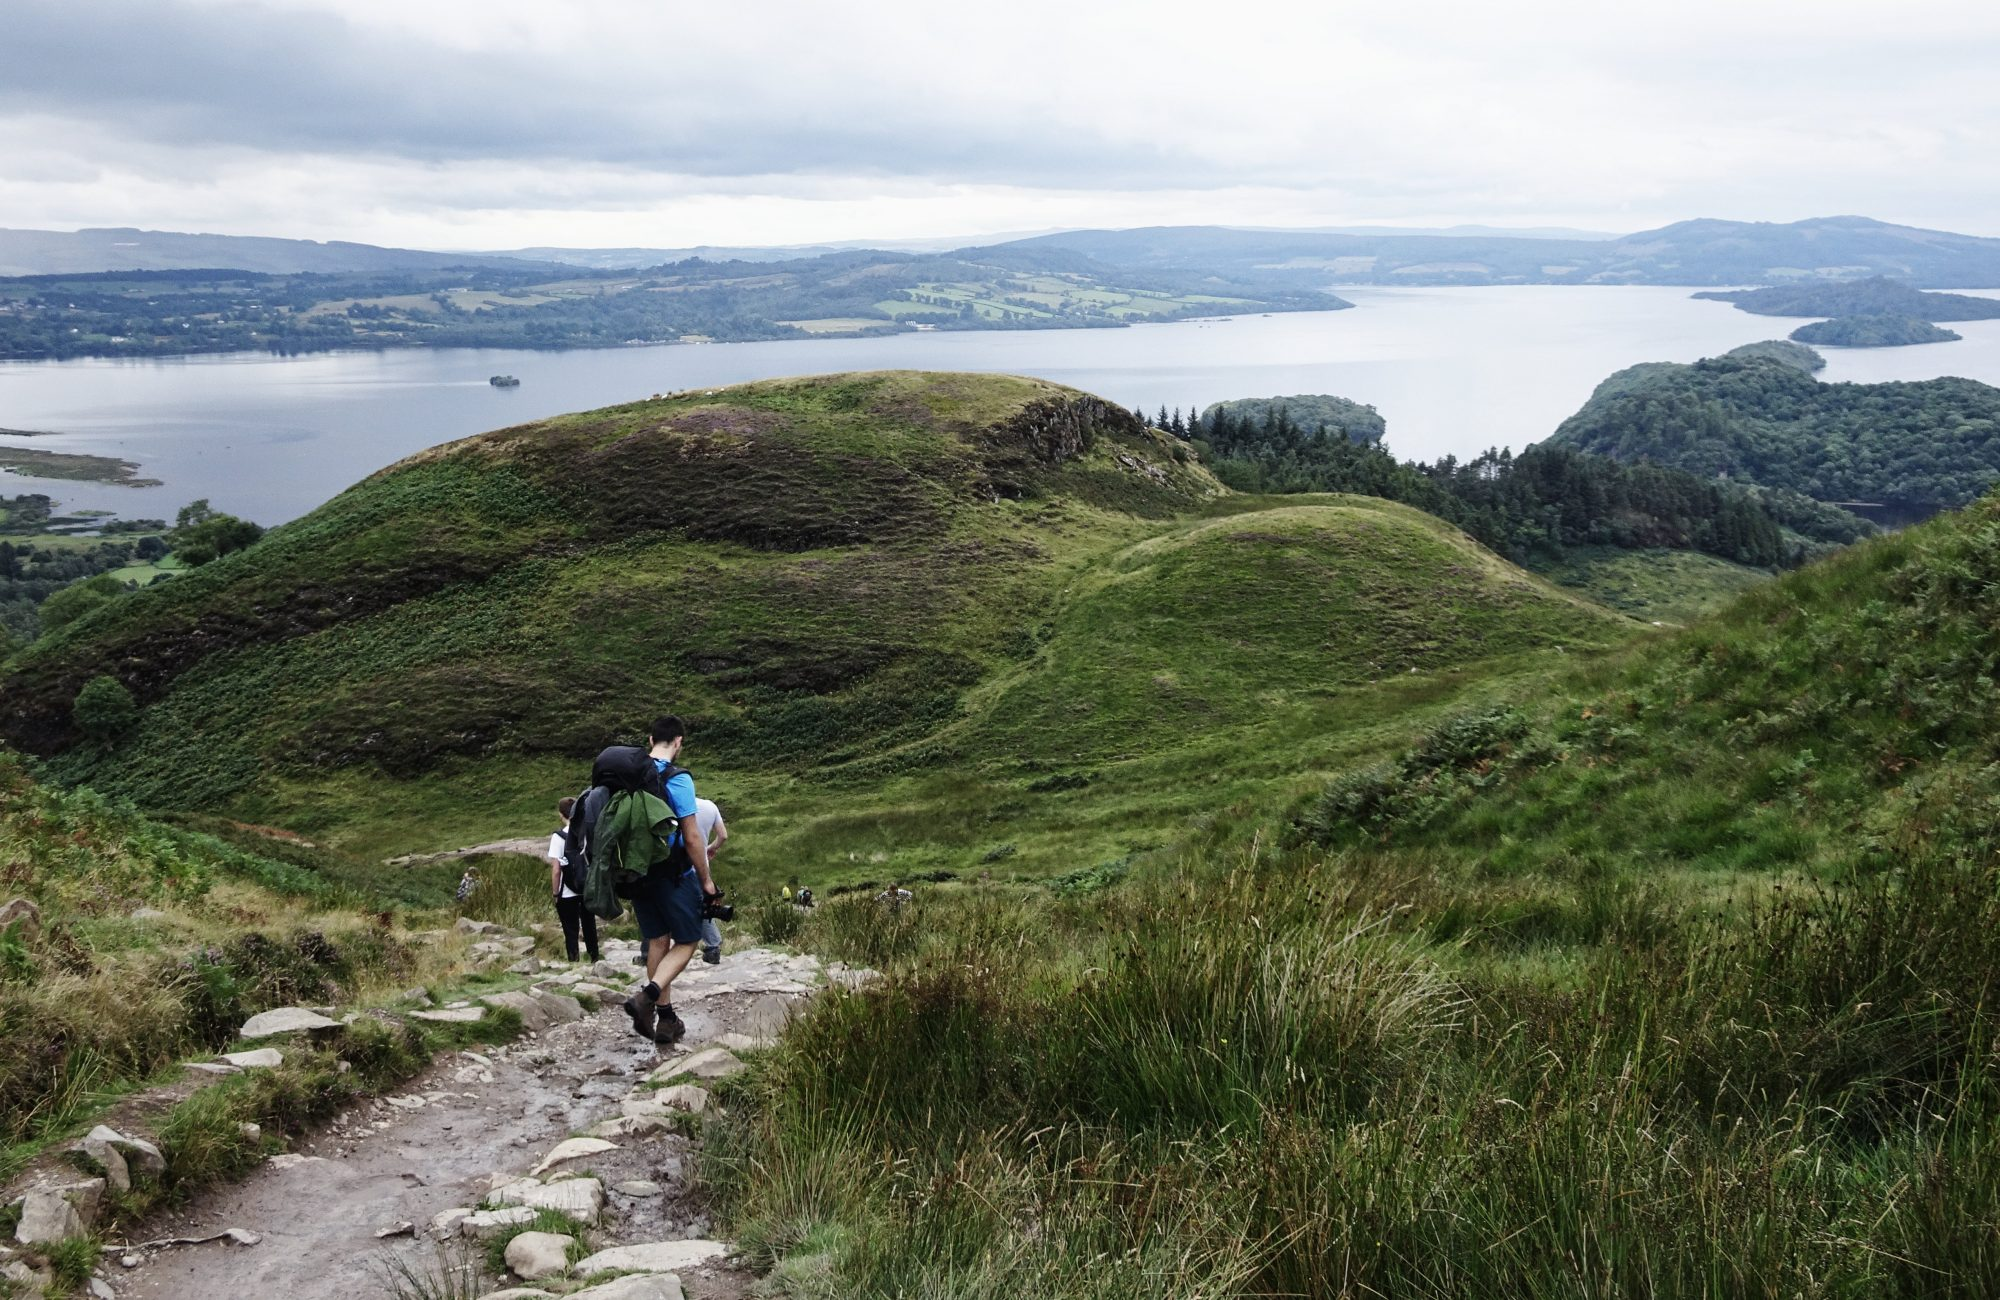 Abstieg vom Conic Hill, West Highland Way, Schottland, Wanderung, Weitwandern, Trekking, Highlands